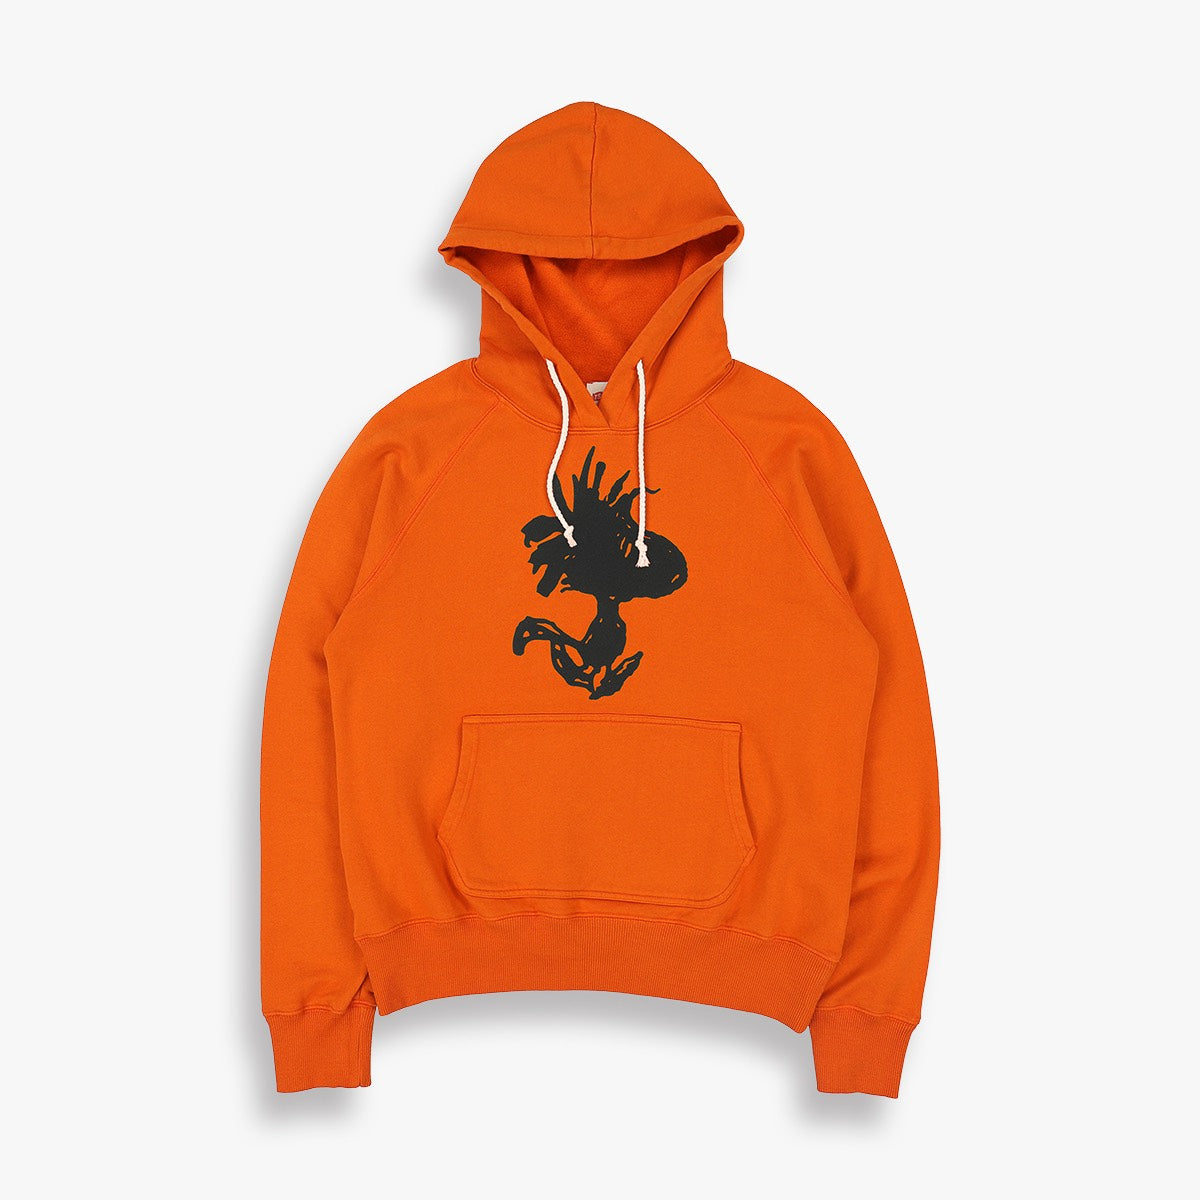 WOODSTOCK ANY ROAD HOODED SWEATSHIRT